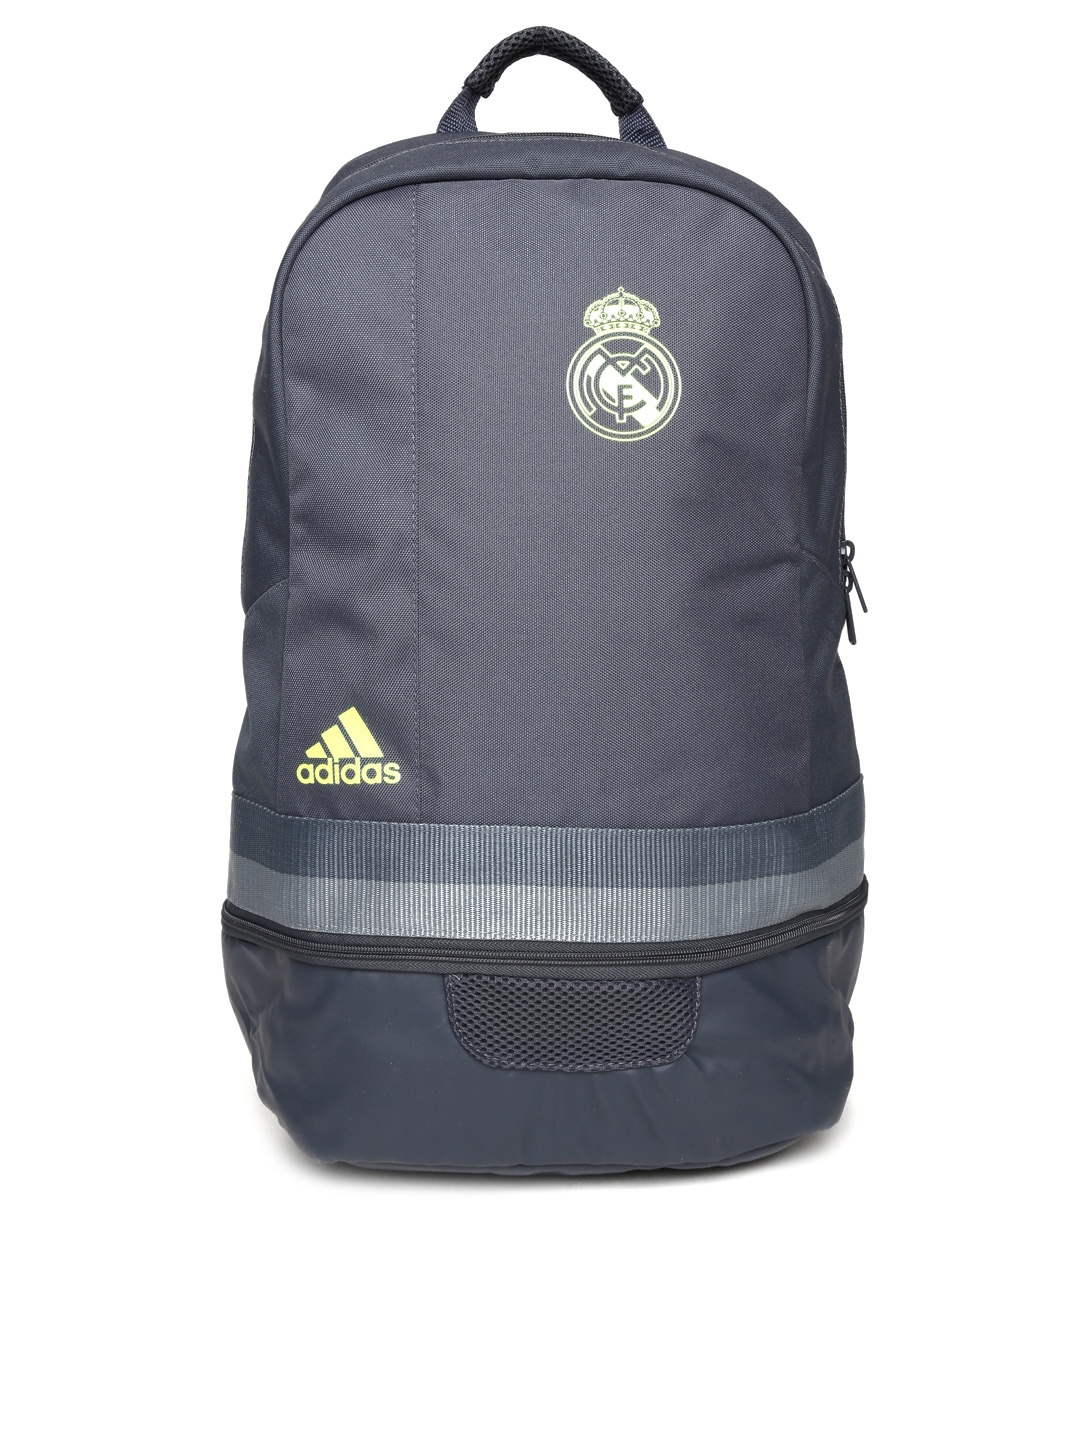 Adidas aa1078 Unisex Blue Real Madrid Football Club Backpack- Price in India c6f4ee6d60